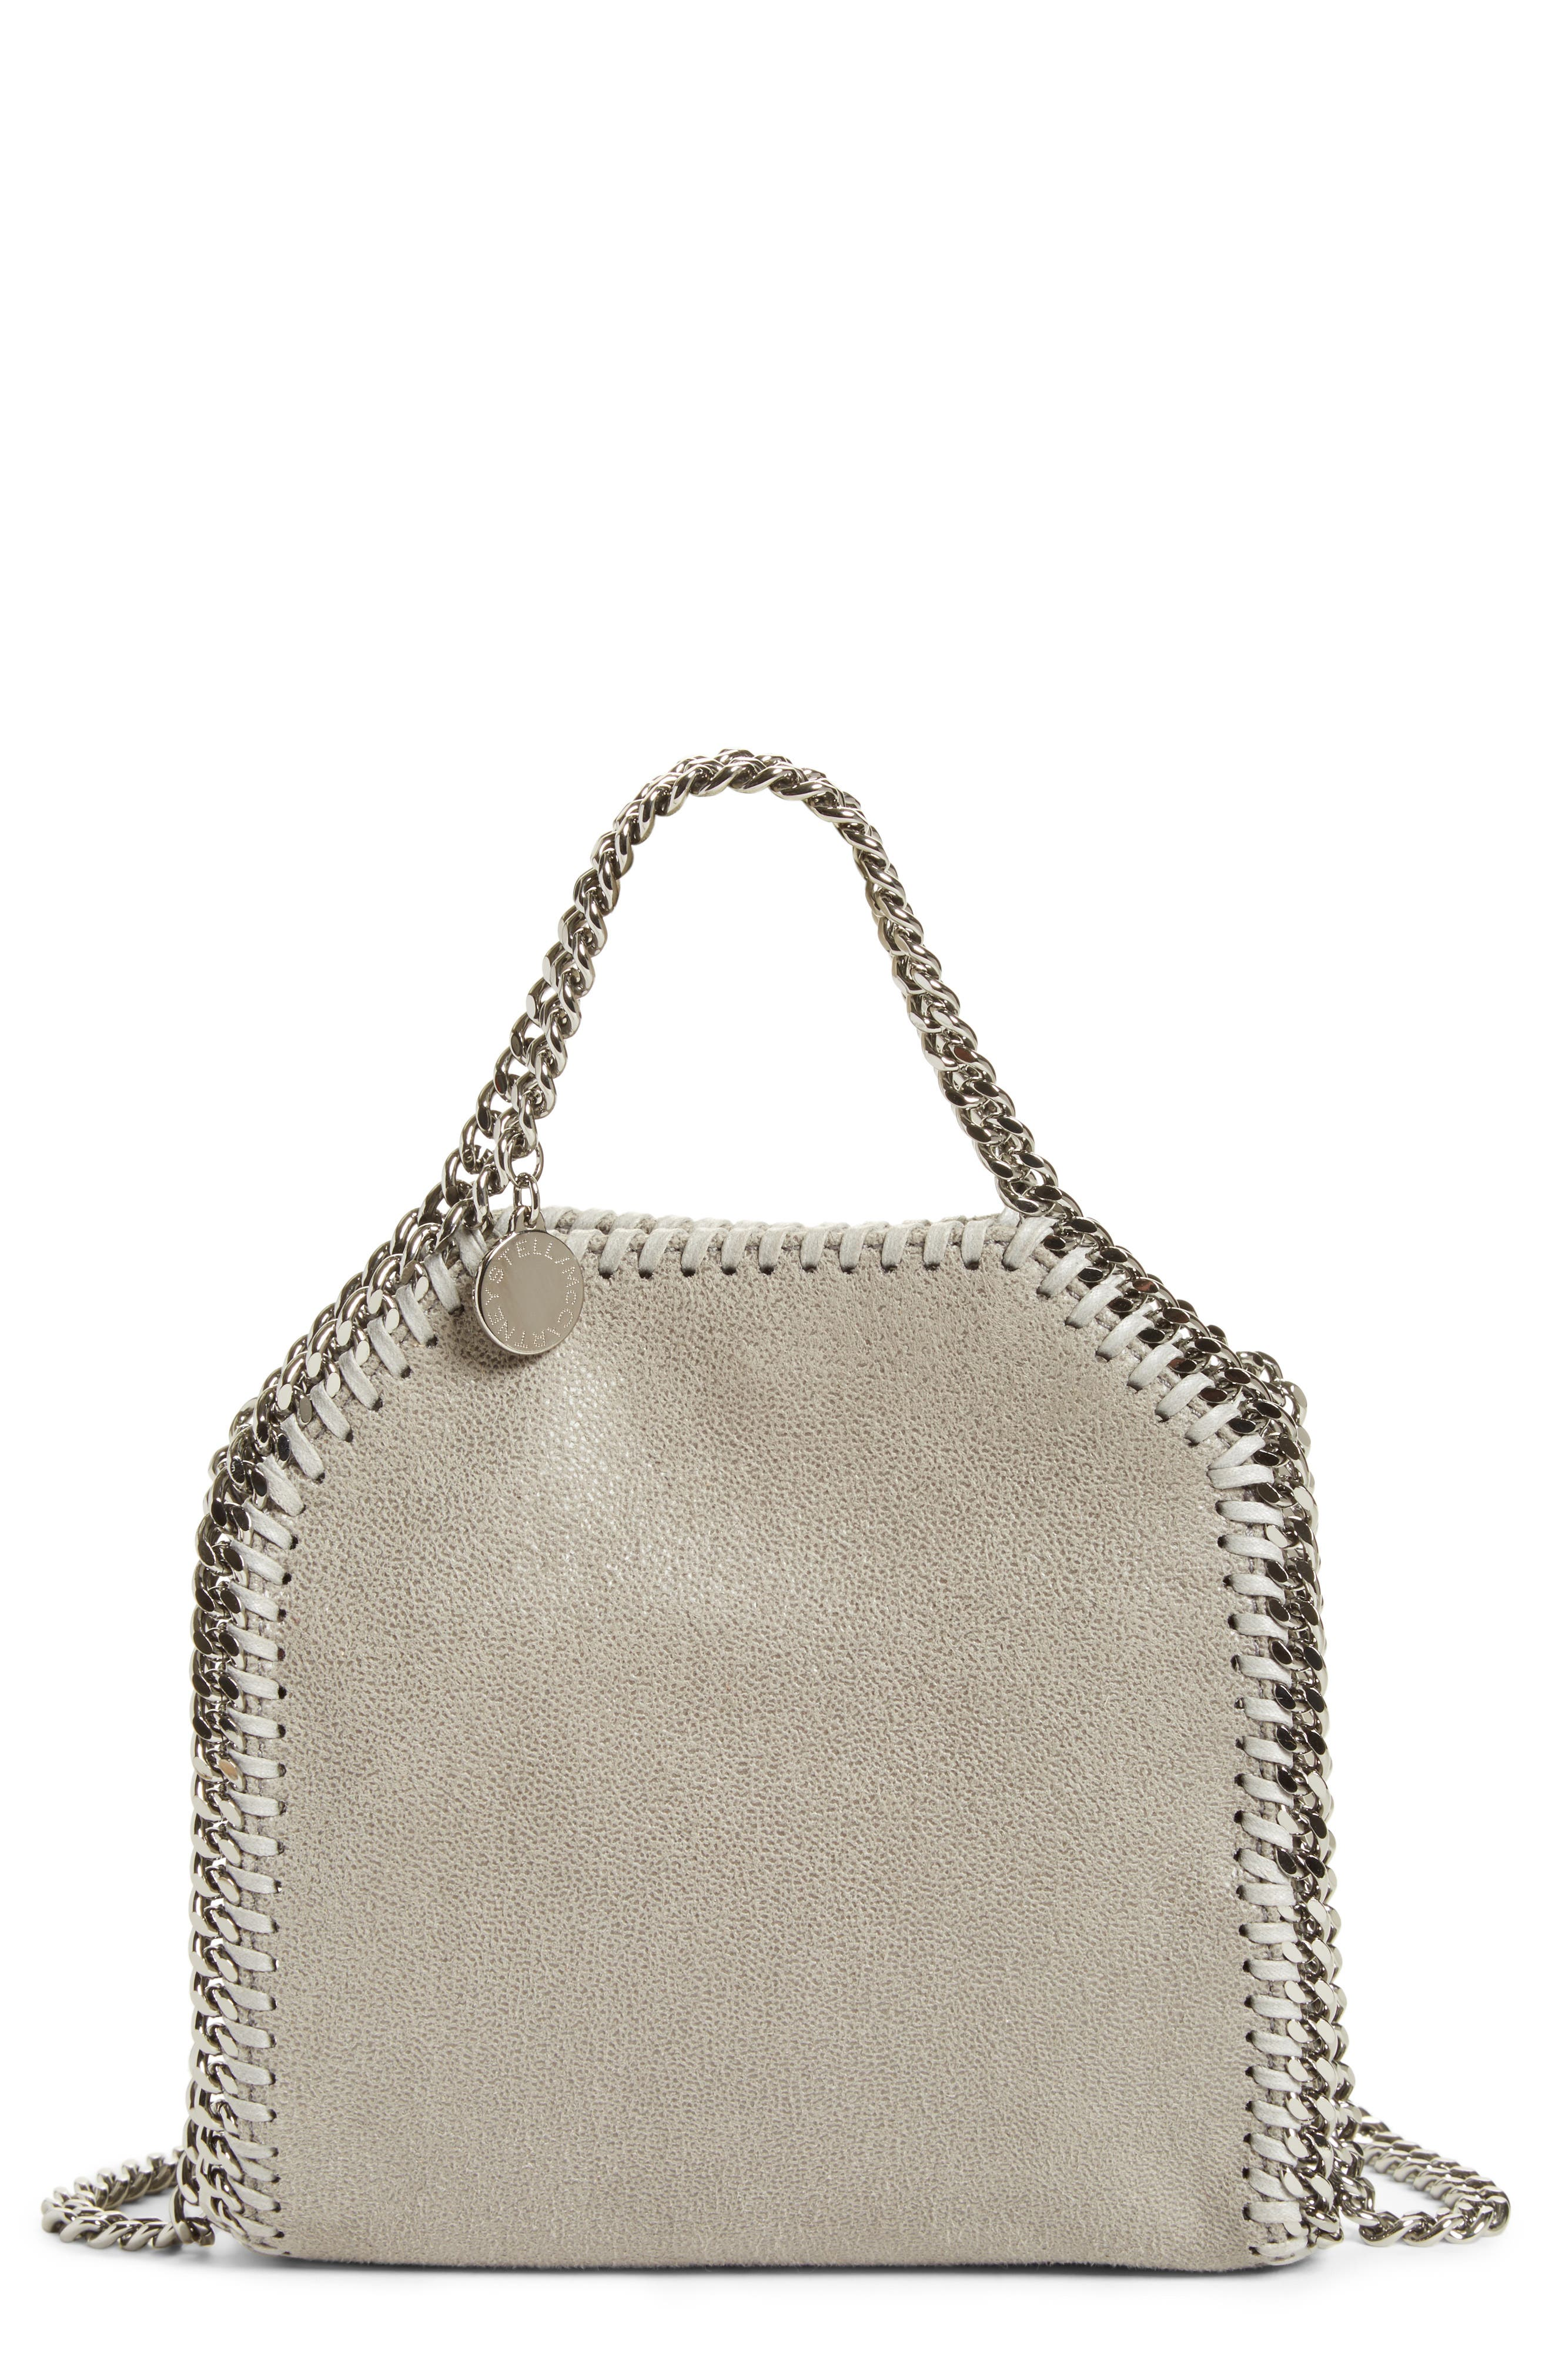 'Tiny Falabella' Faux Leather Crossbody Bag,                             Main thumbnail 1, color,                             Light Grey